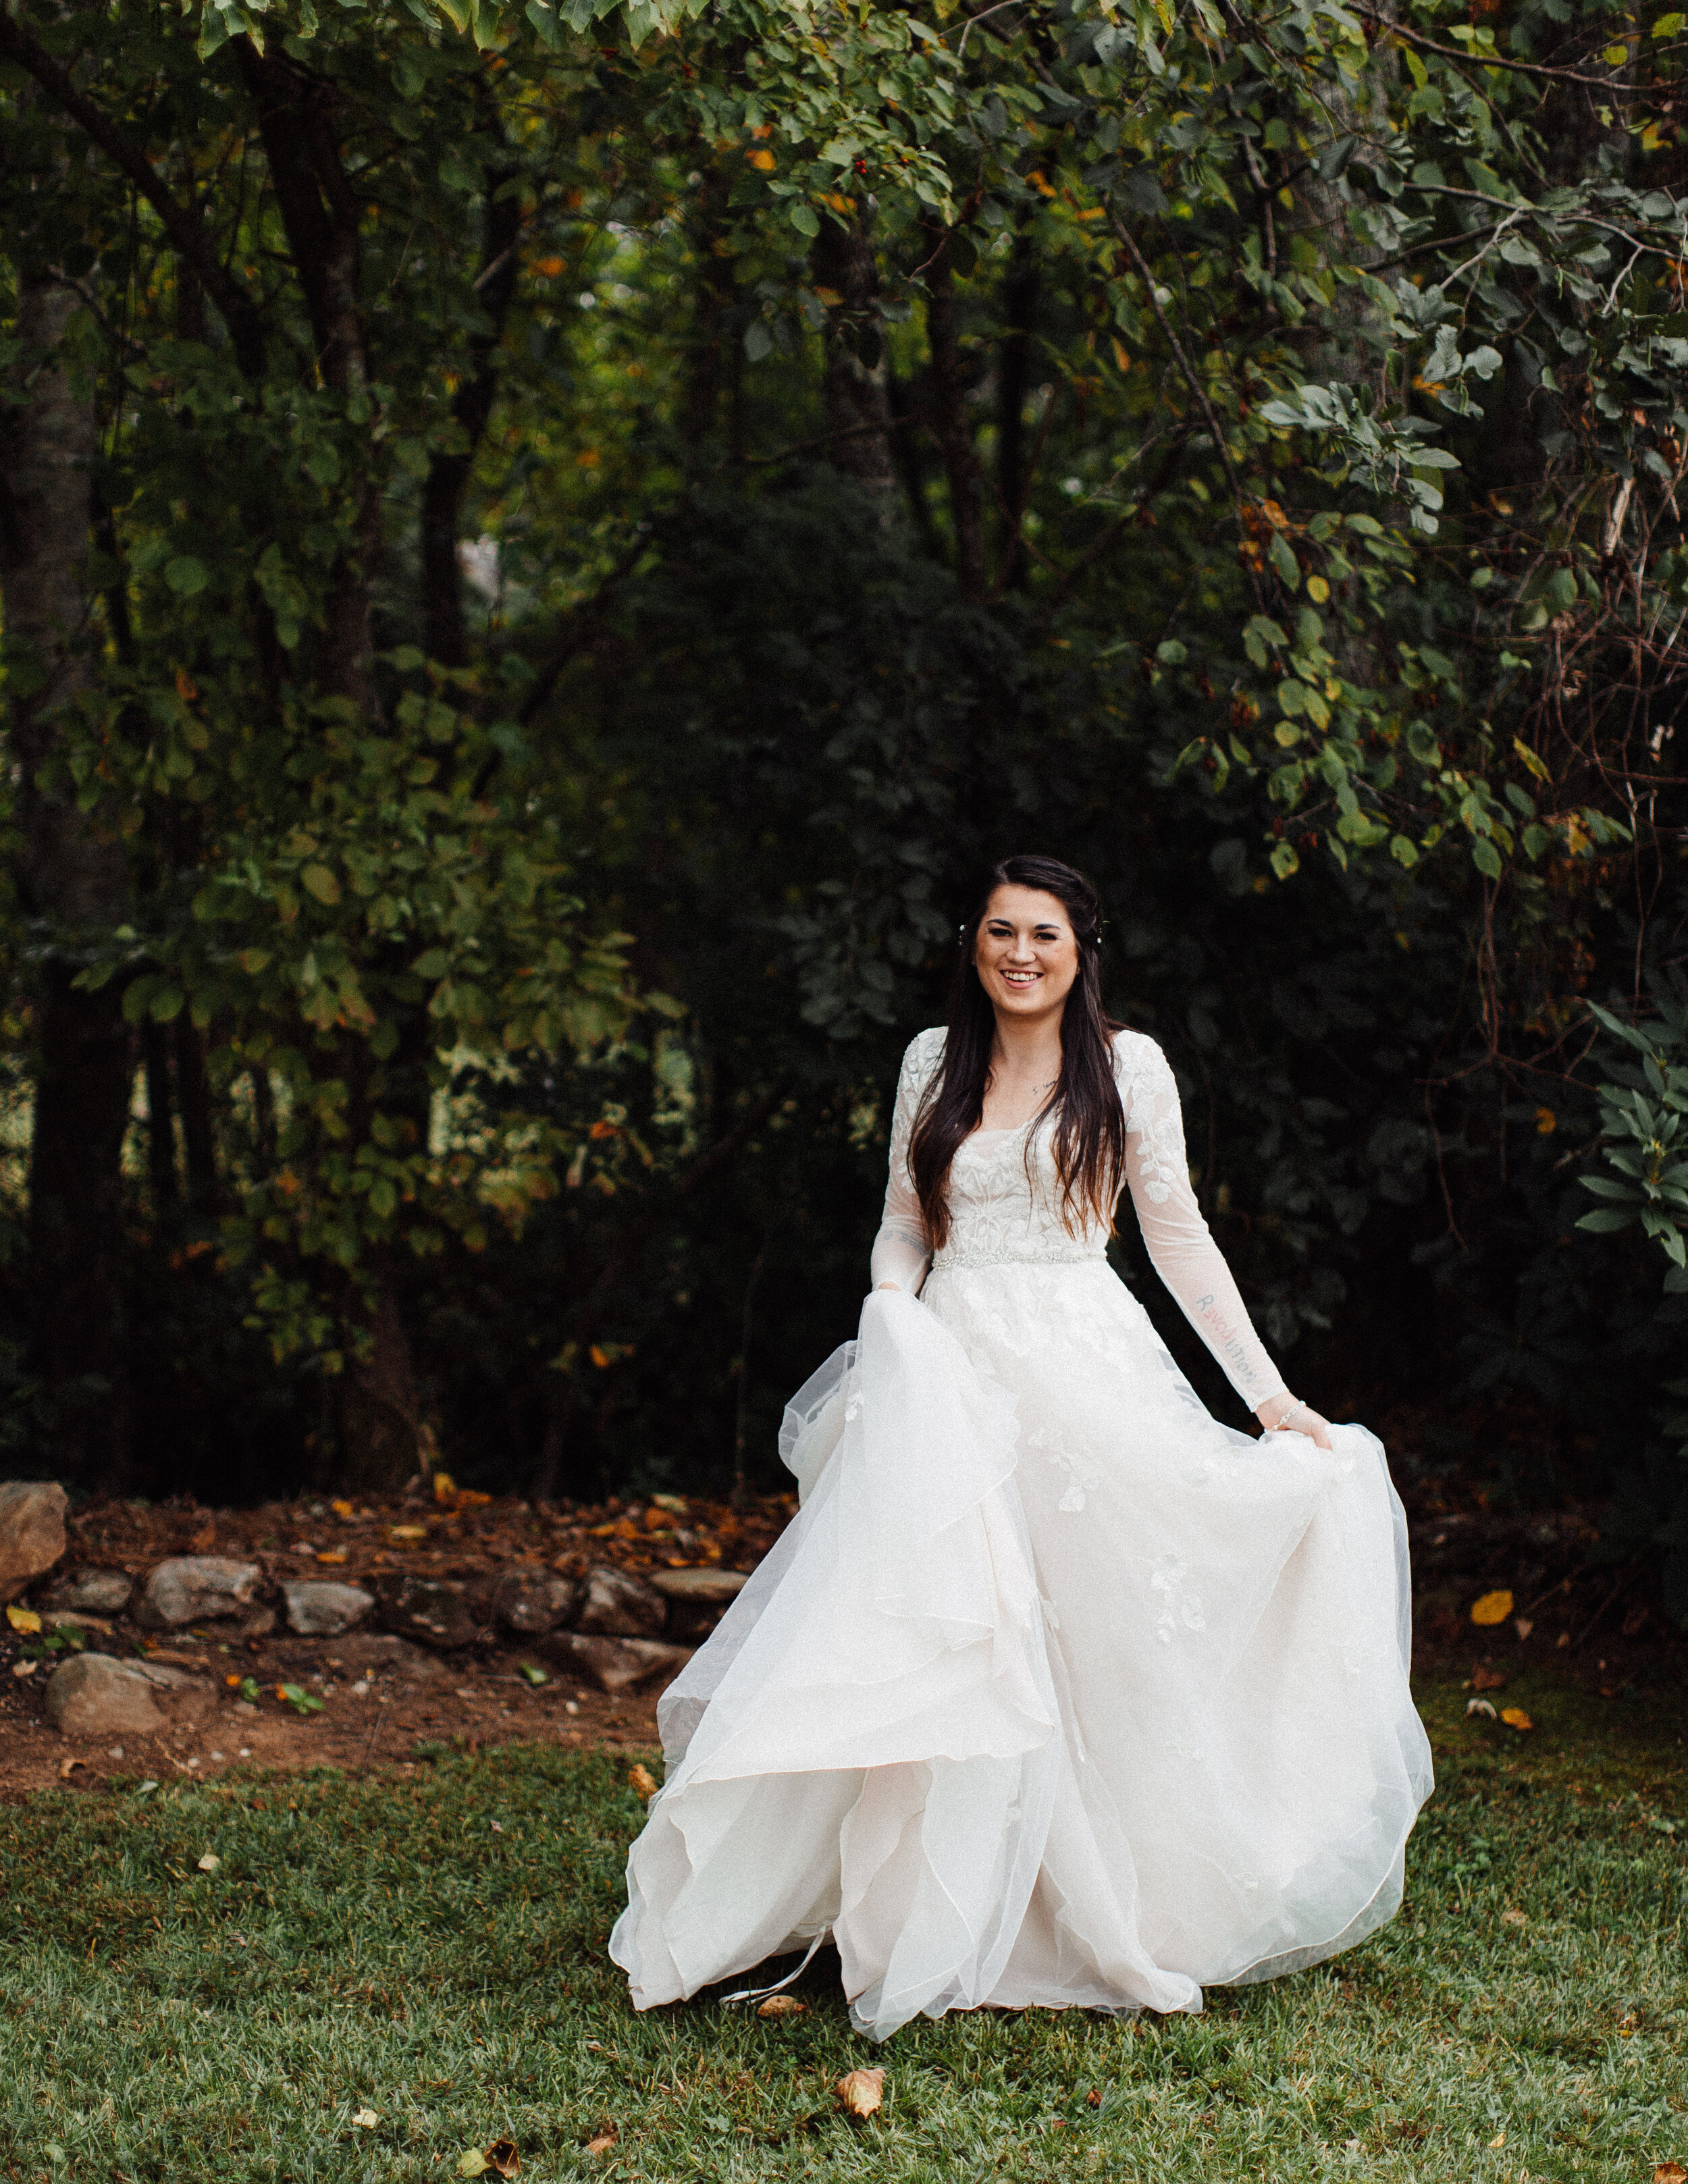 atlanta_wedding_photographers_georgia_same_sex_rustic_barn_farm_lesbian_weddings_inclusive_1196.jpg